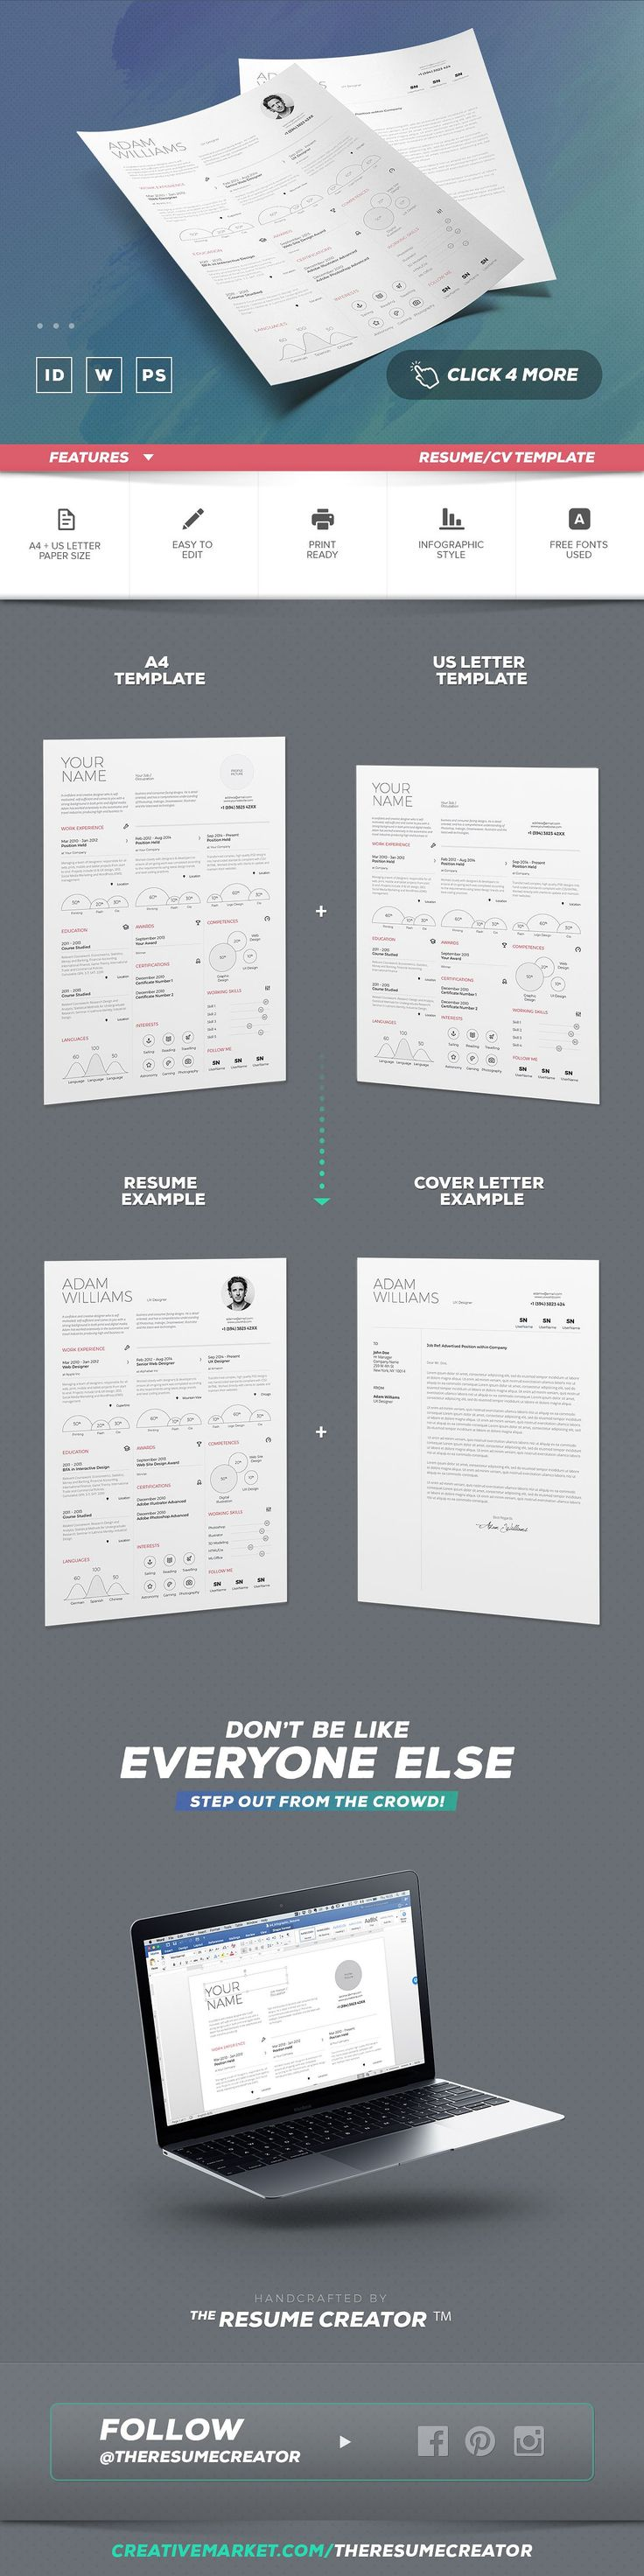 letter format for application%0A Infographic Resume Cv Template Vol   by TheResumeCreator on  creativemarket